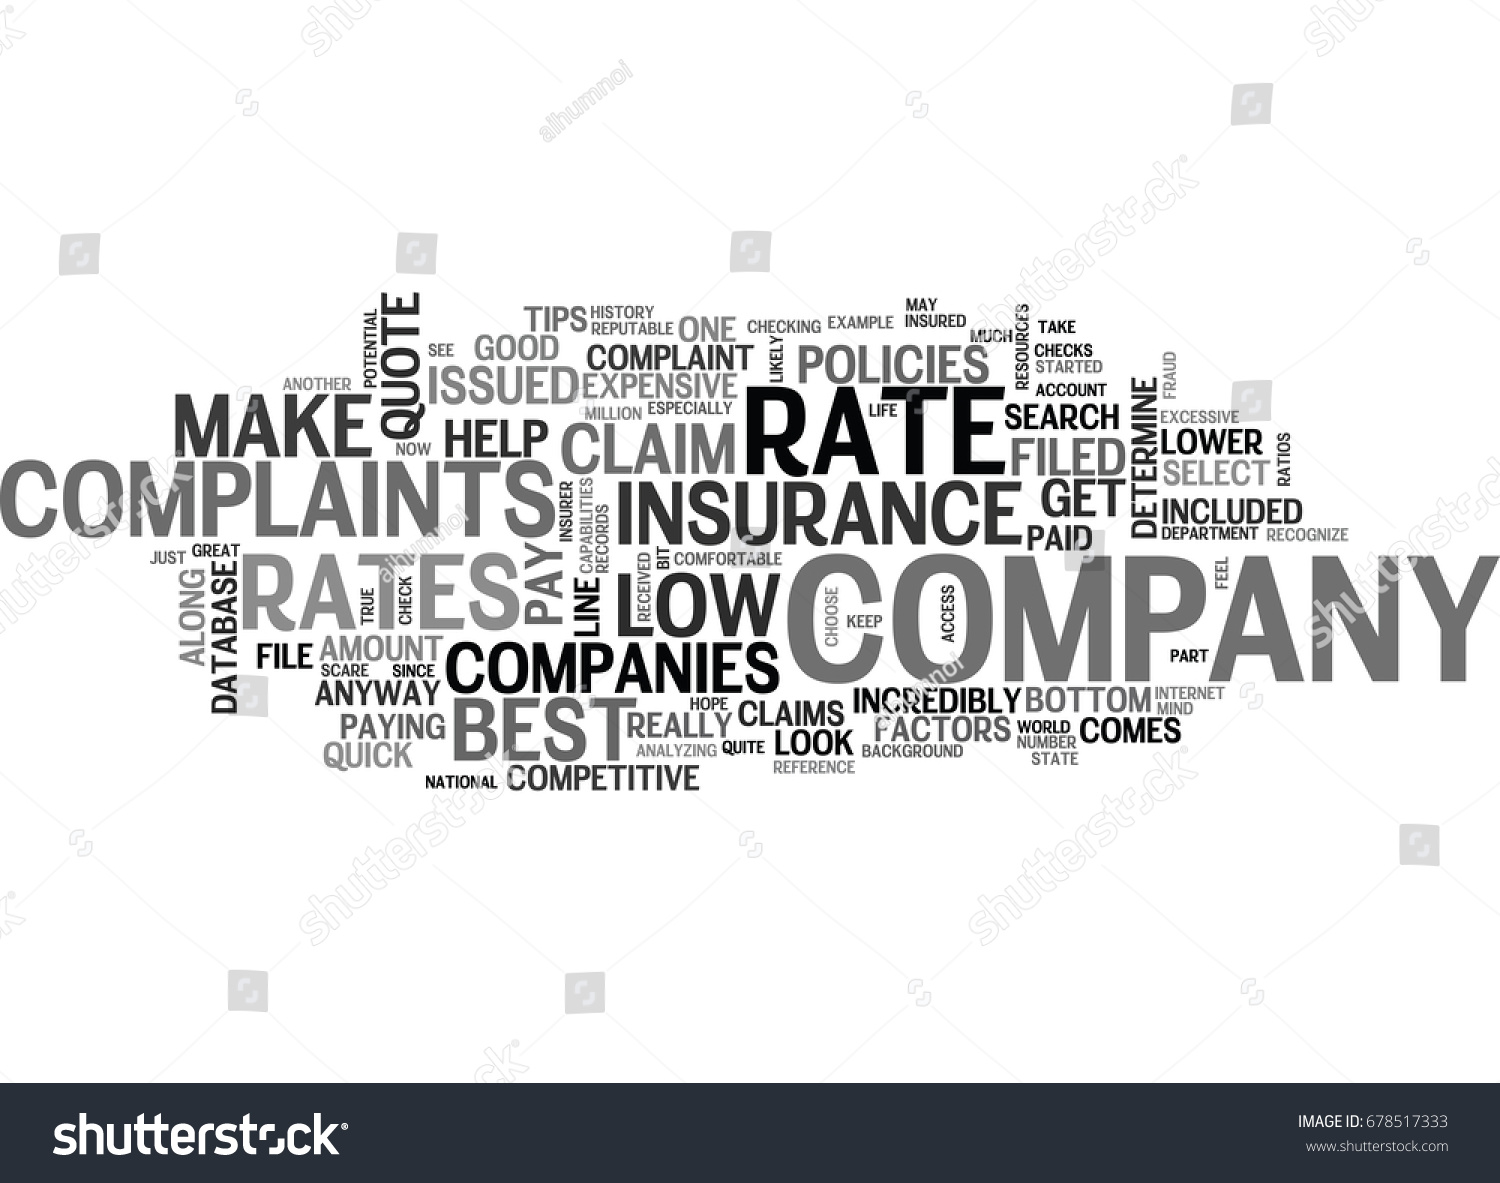 Quick Life Insurance Quote Amusing Best Life Insurance Quote How Recognize Stock Vector 678517333